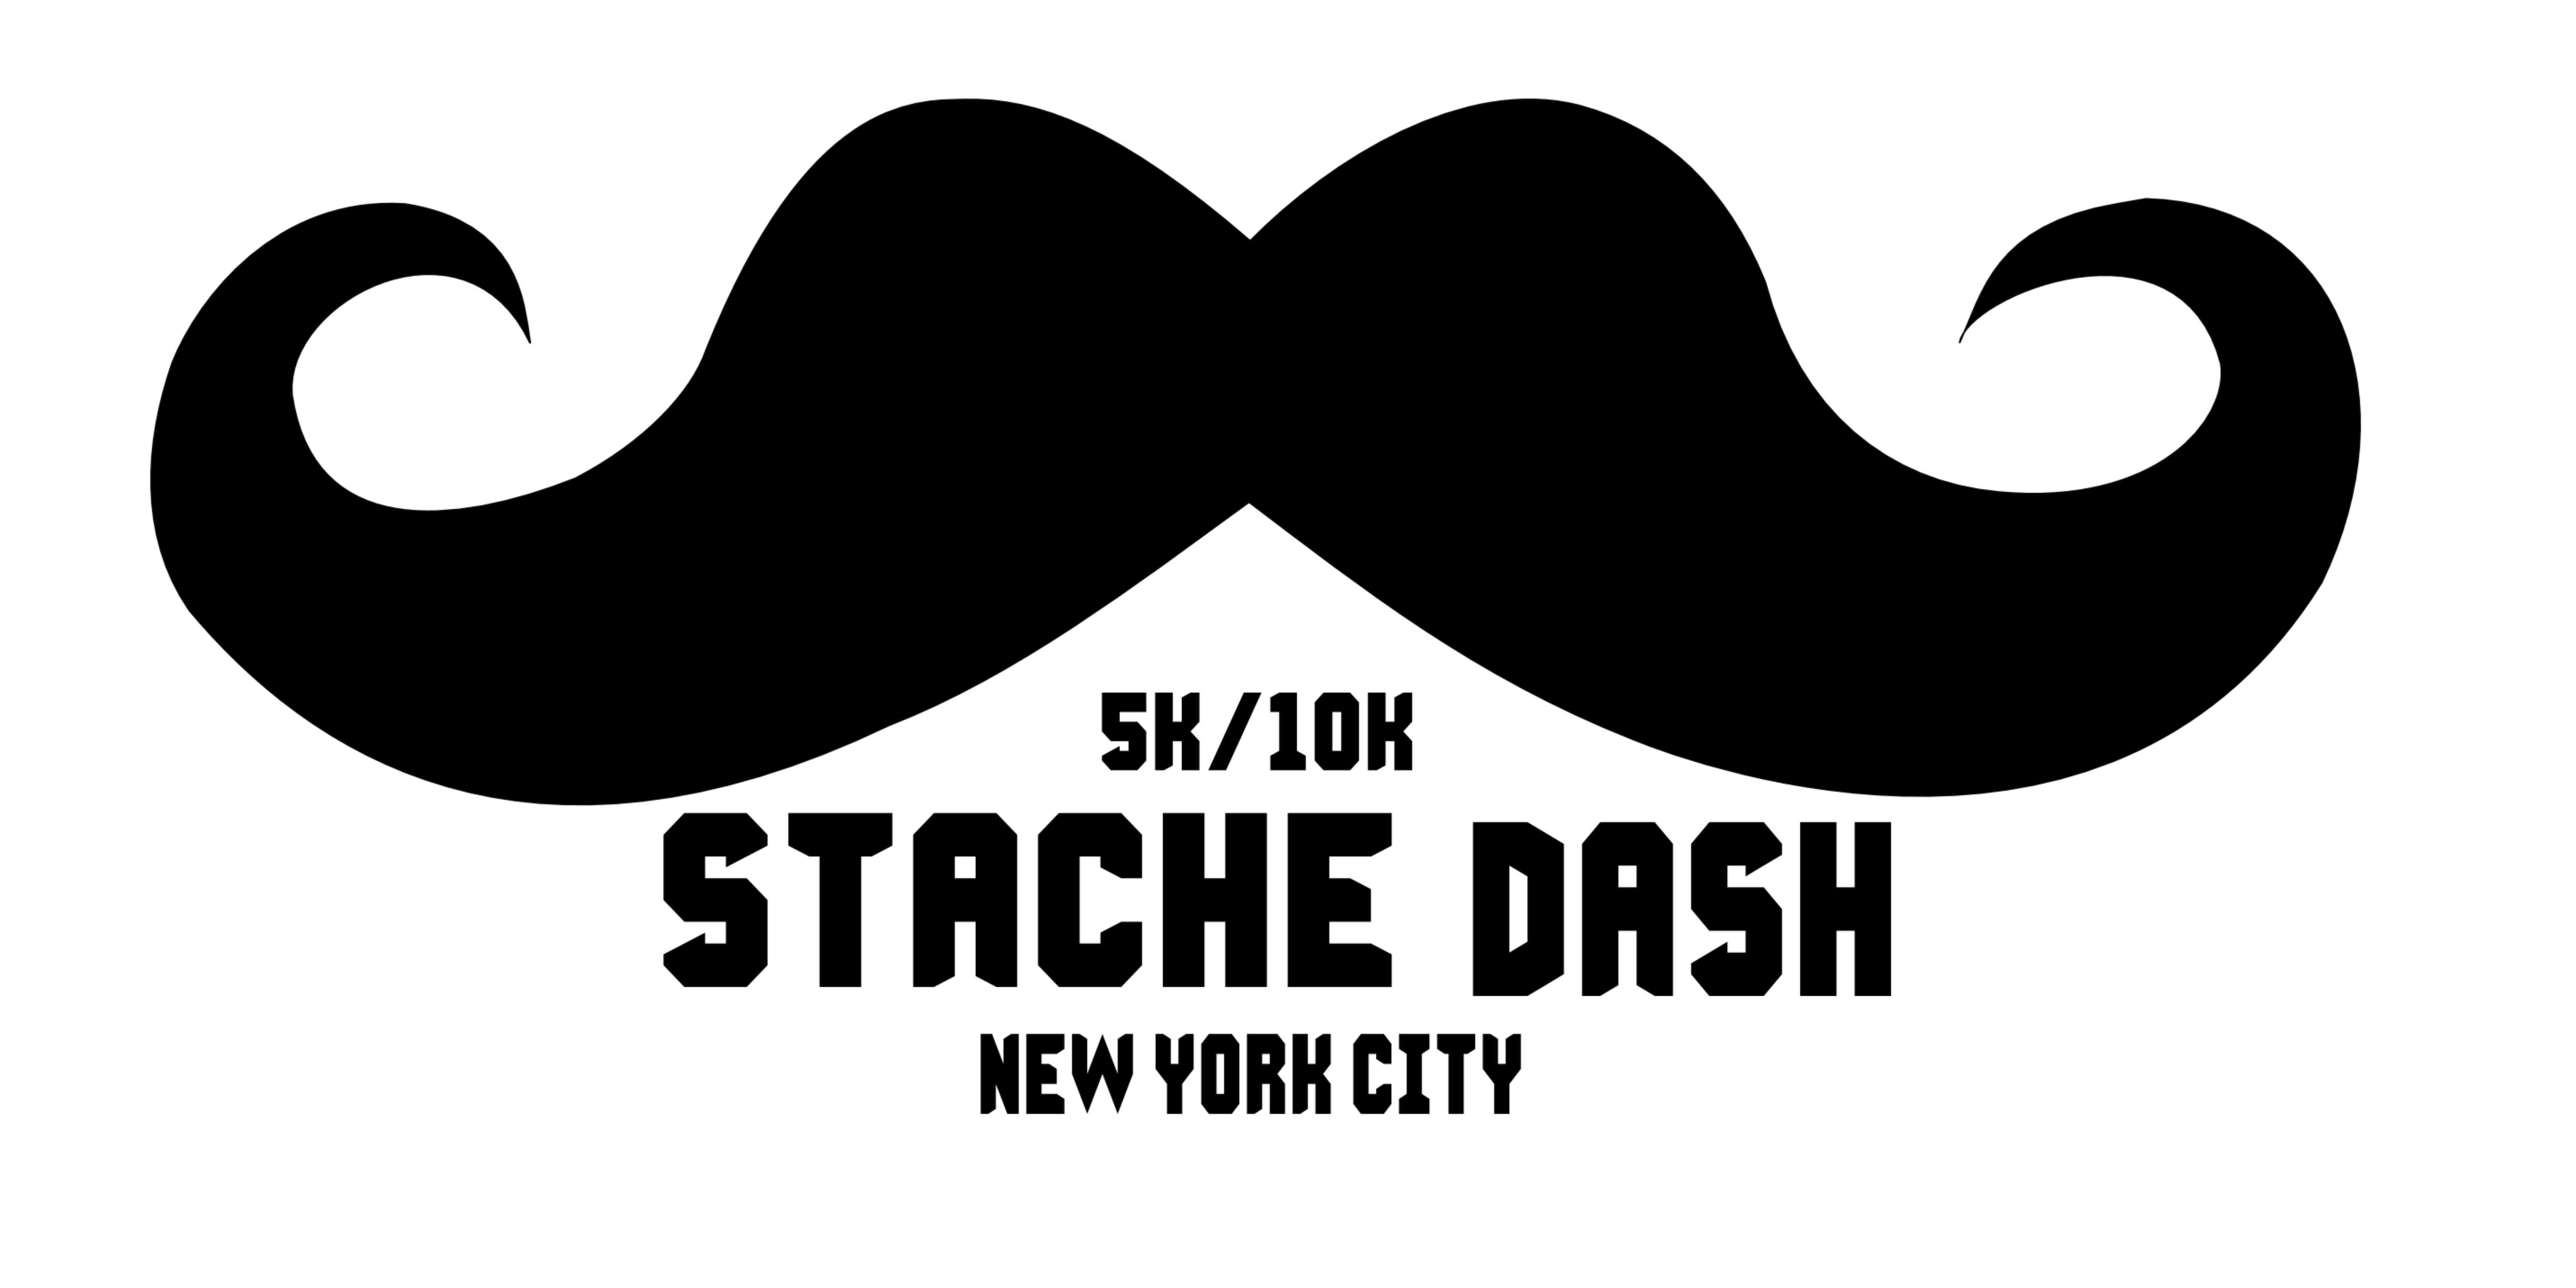 STACHE DASH NYC 11/22/14